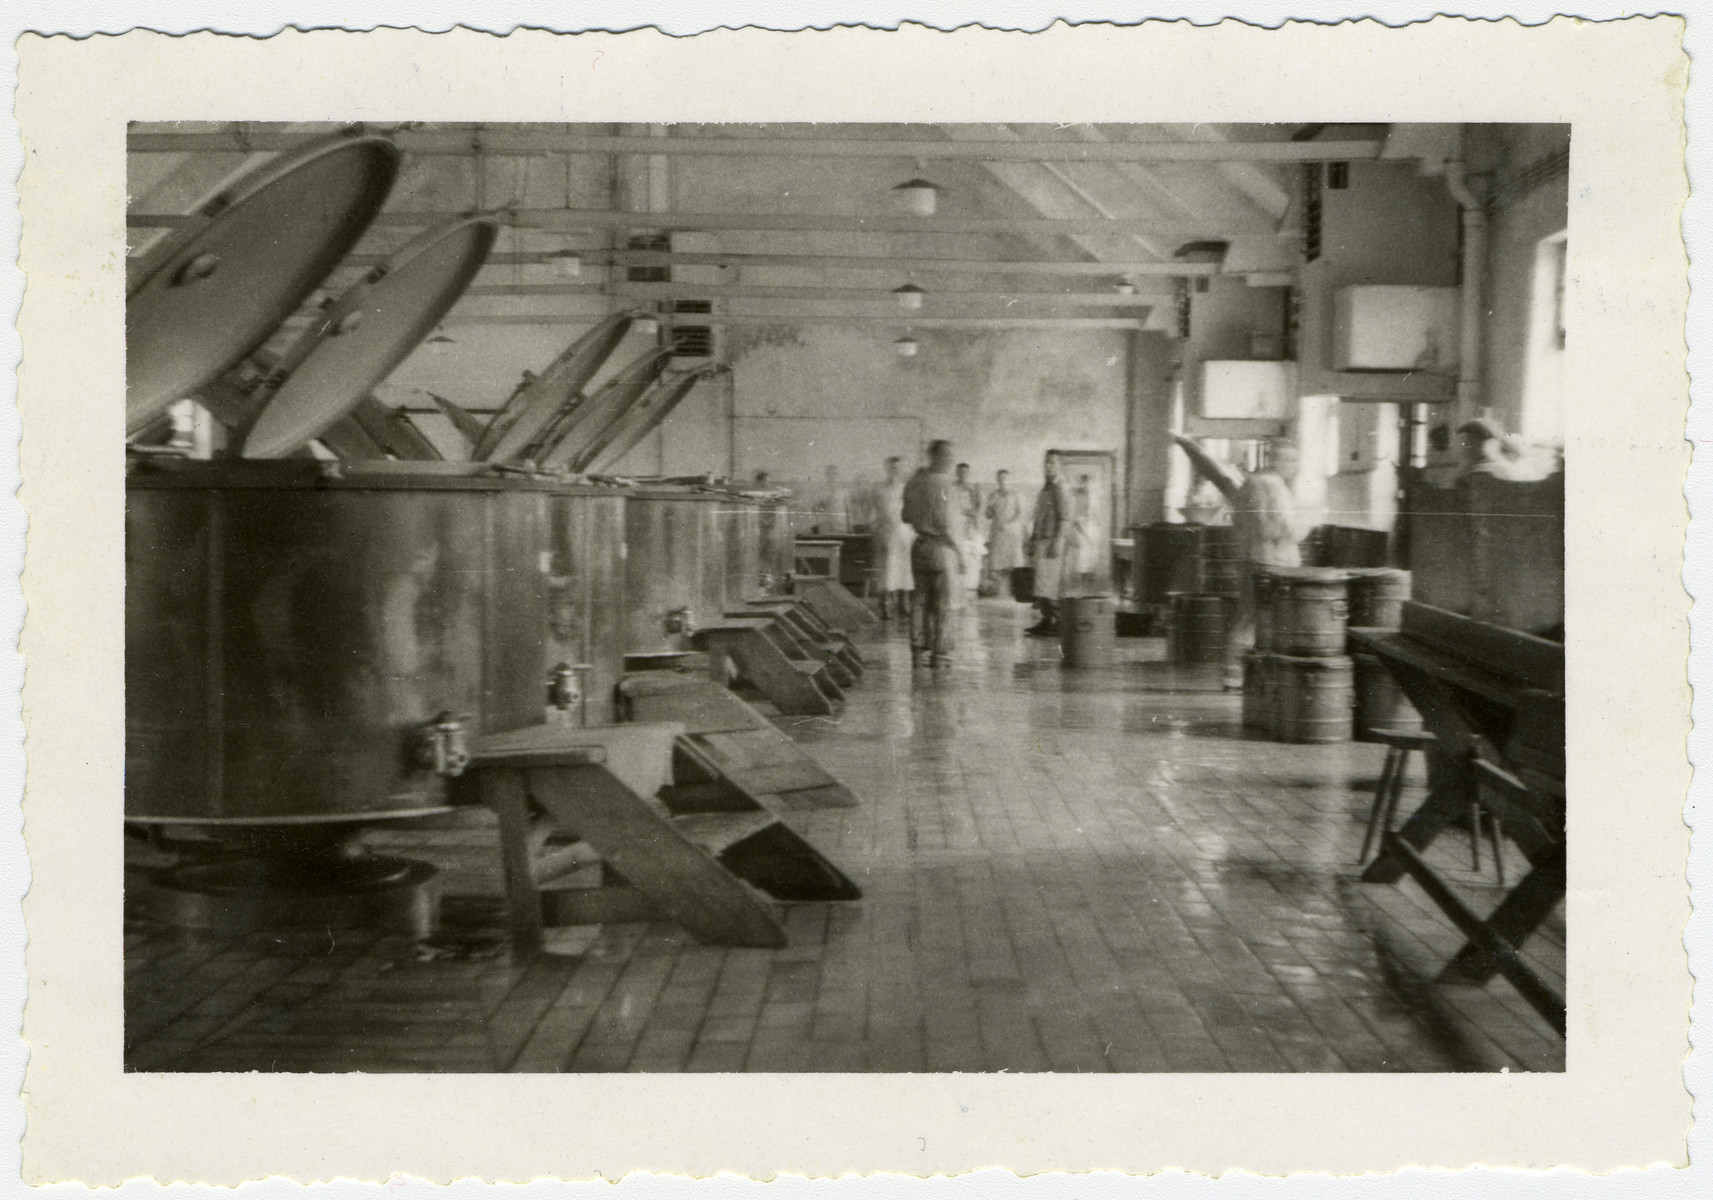 Interior view of the Buchenwald camp kitchen after liberation.